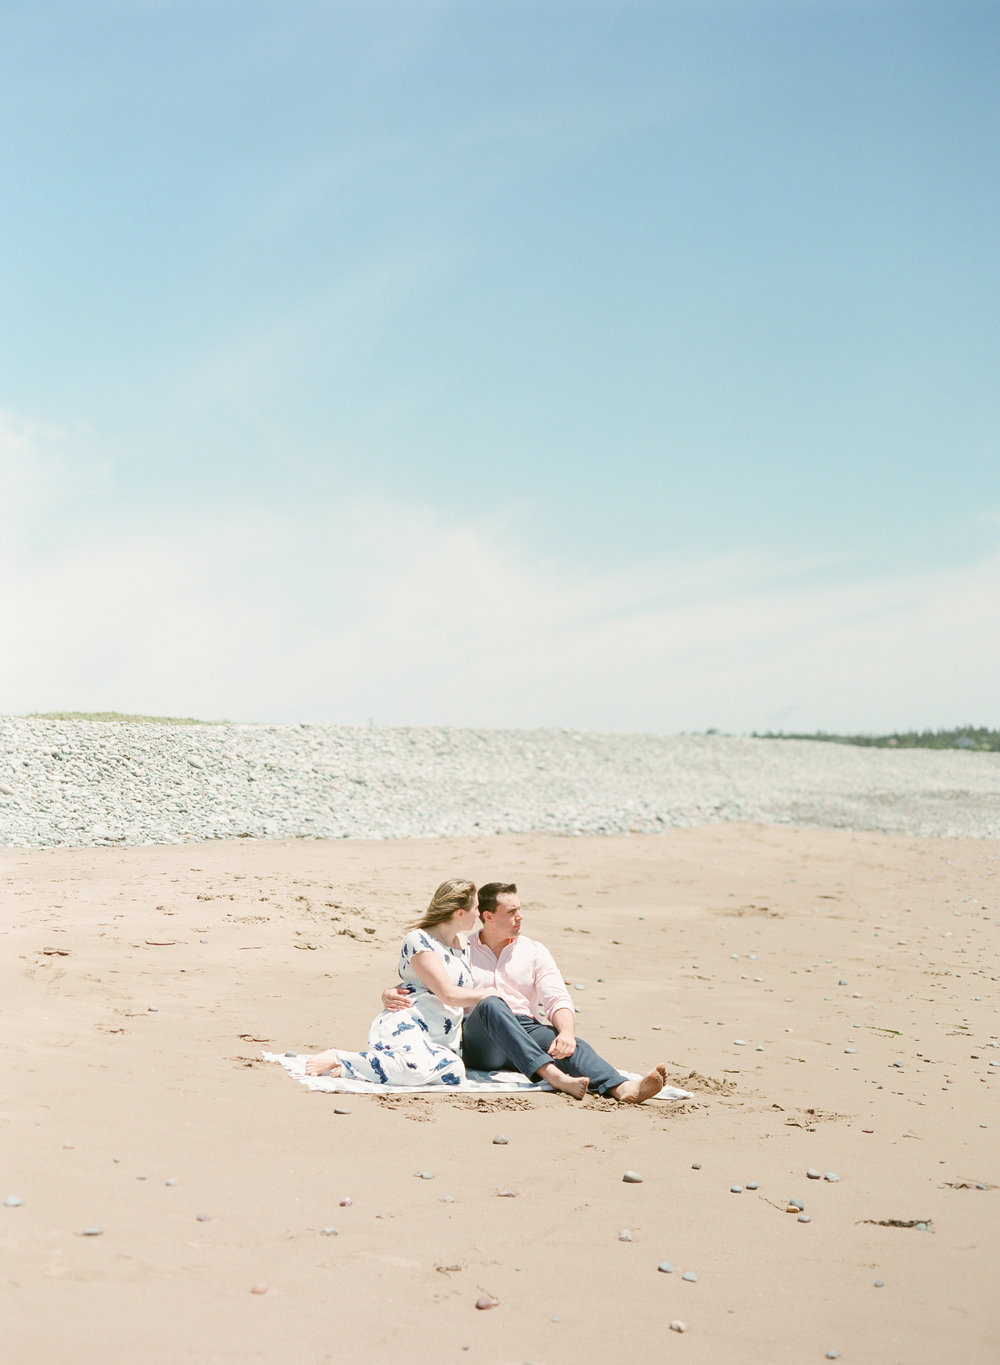 Jacqueline Anne Photography-Melissa and Daniel - Contax 645 - Beach Full Sun-24-2.jpg